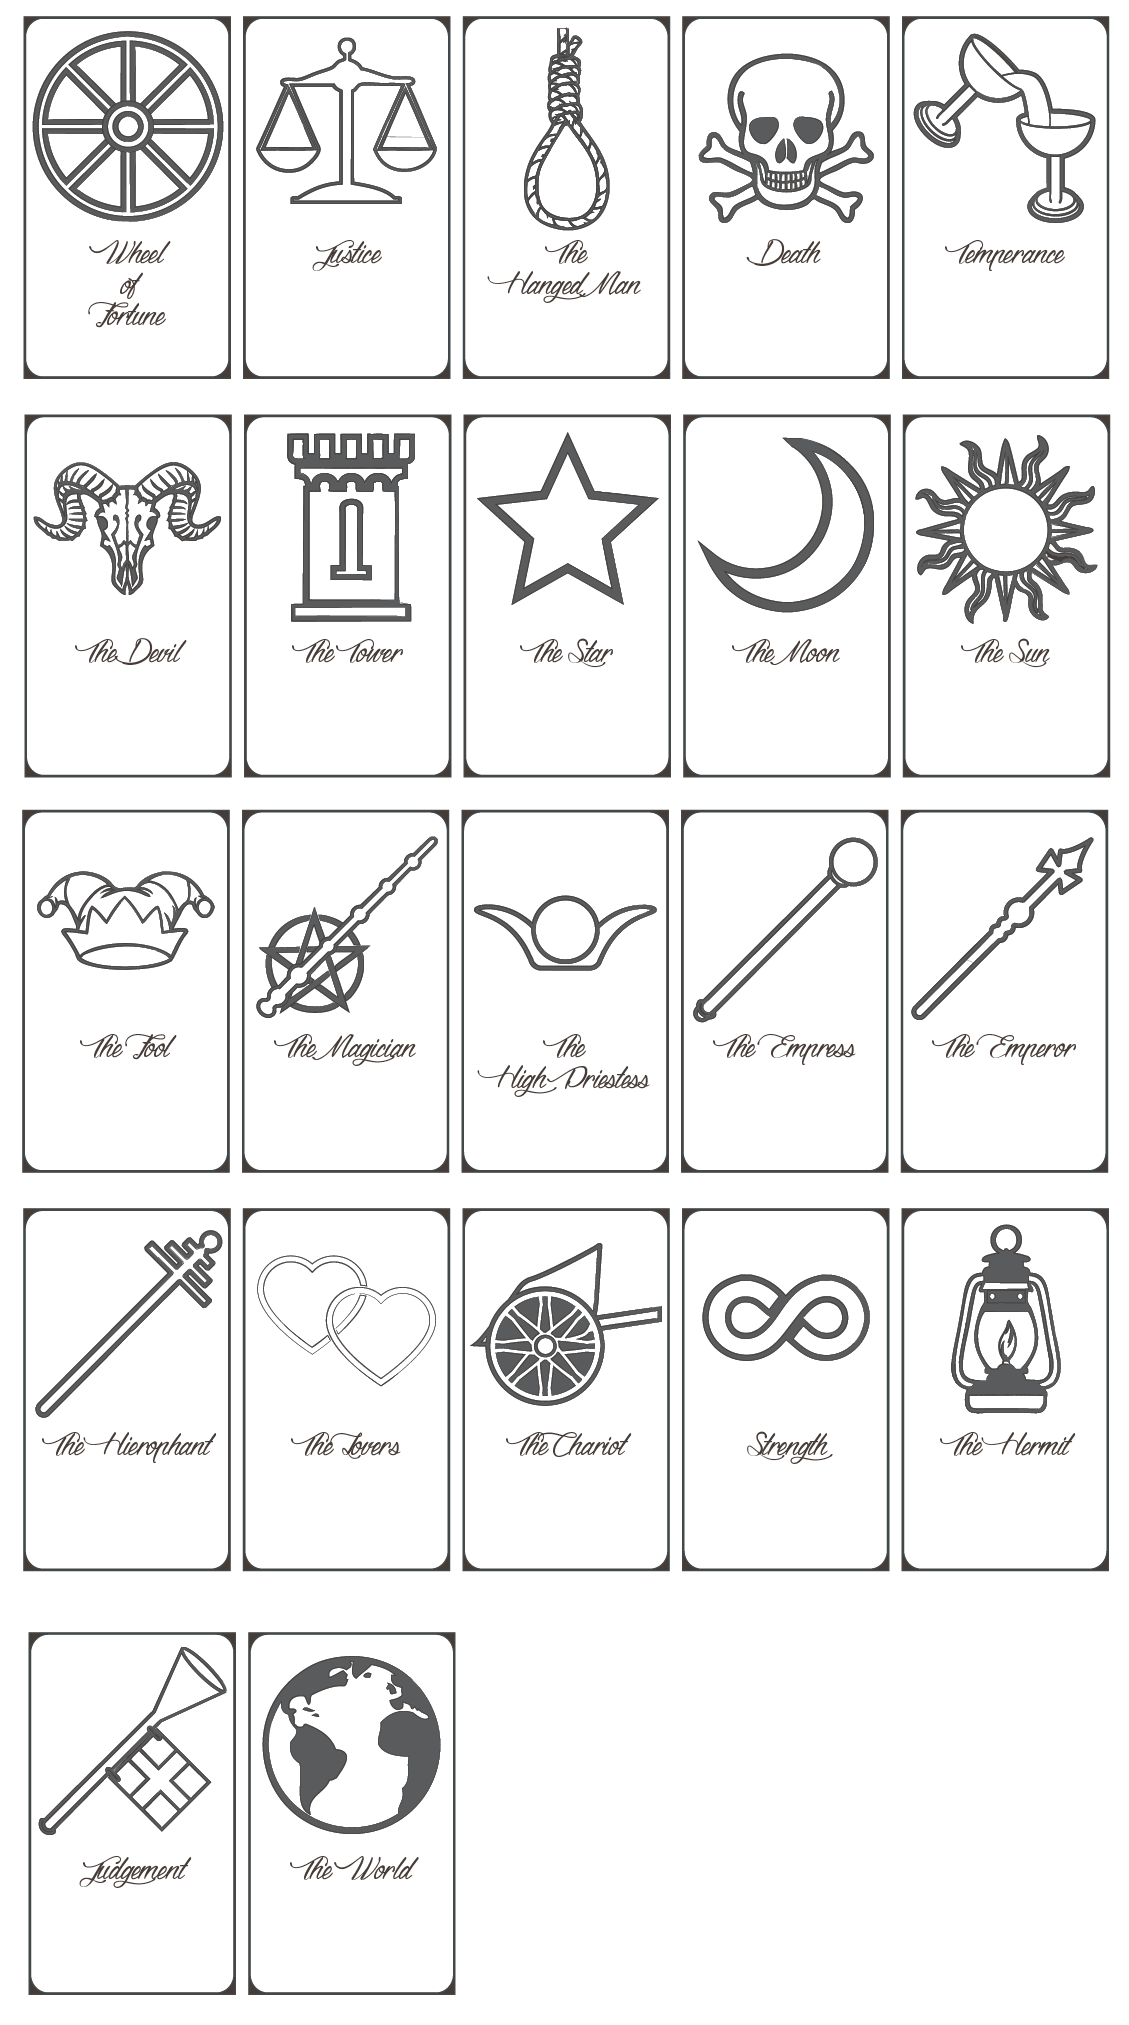 Bewitching image with regard to free printable tarot cards pdf